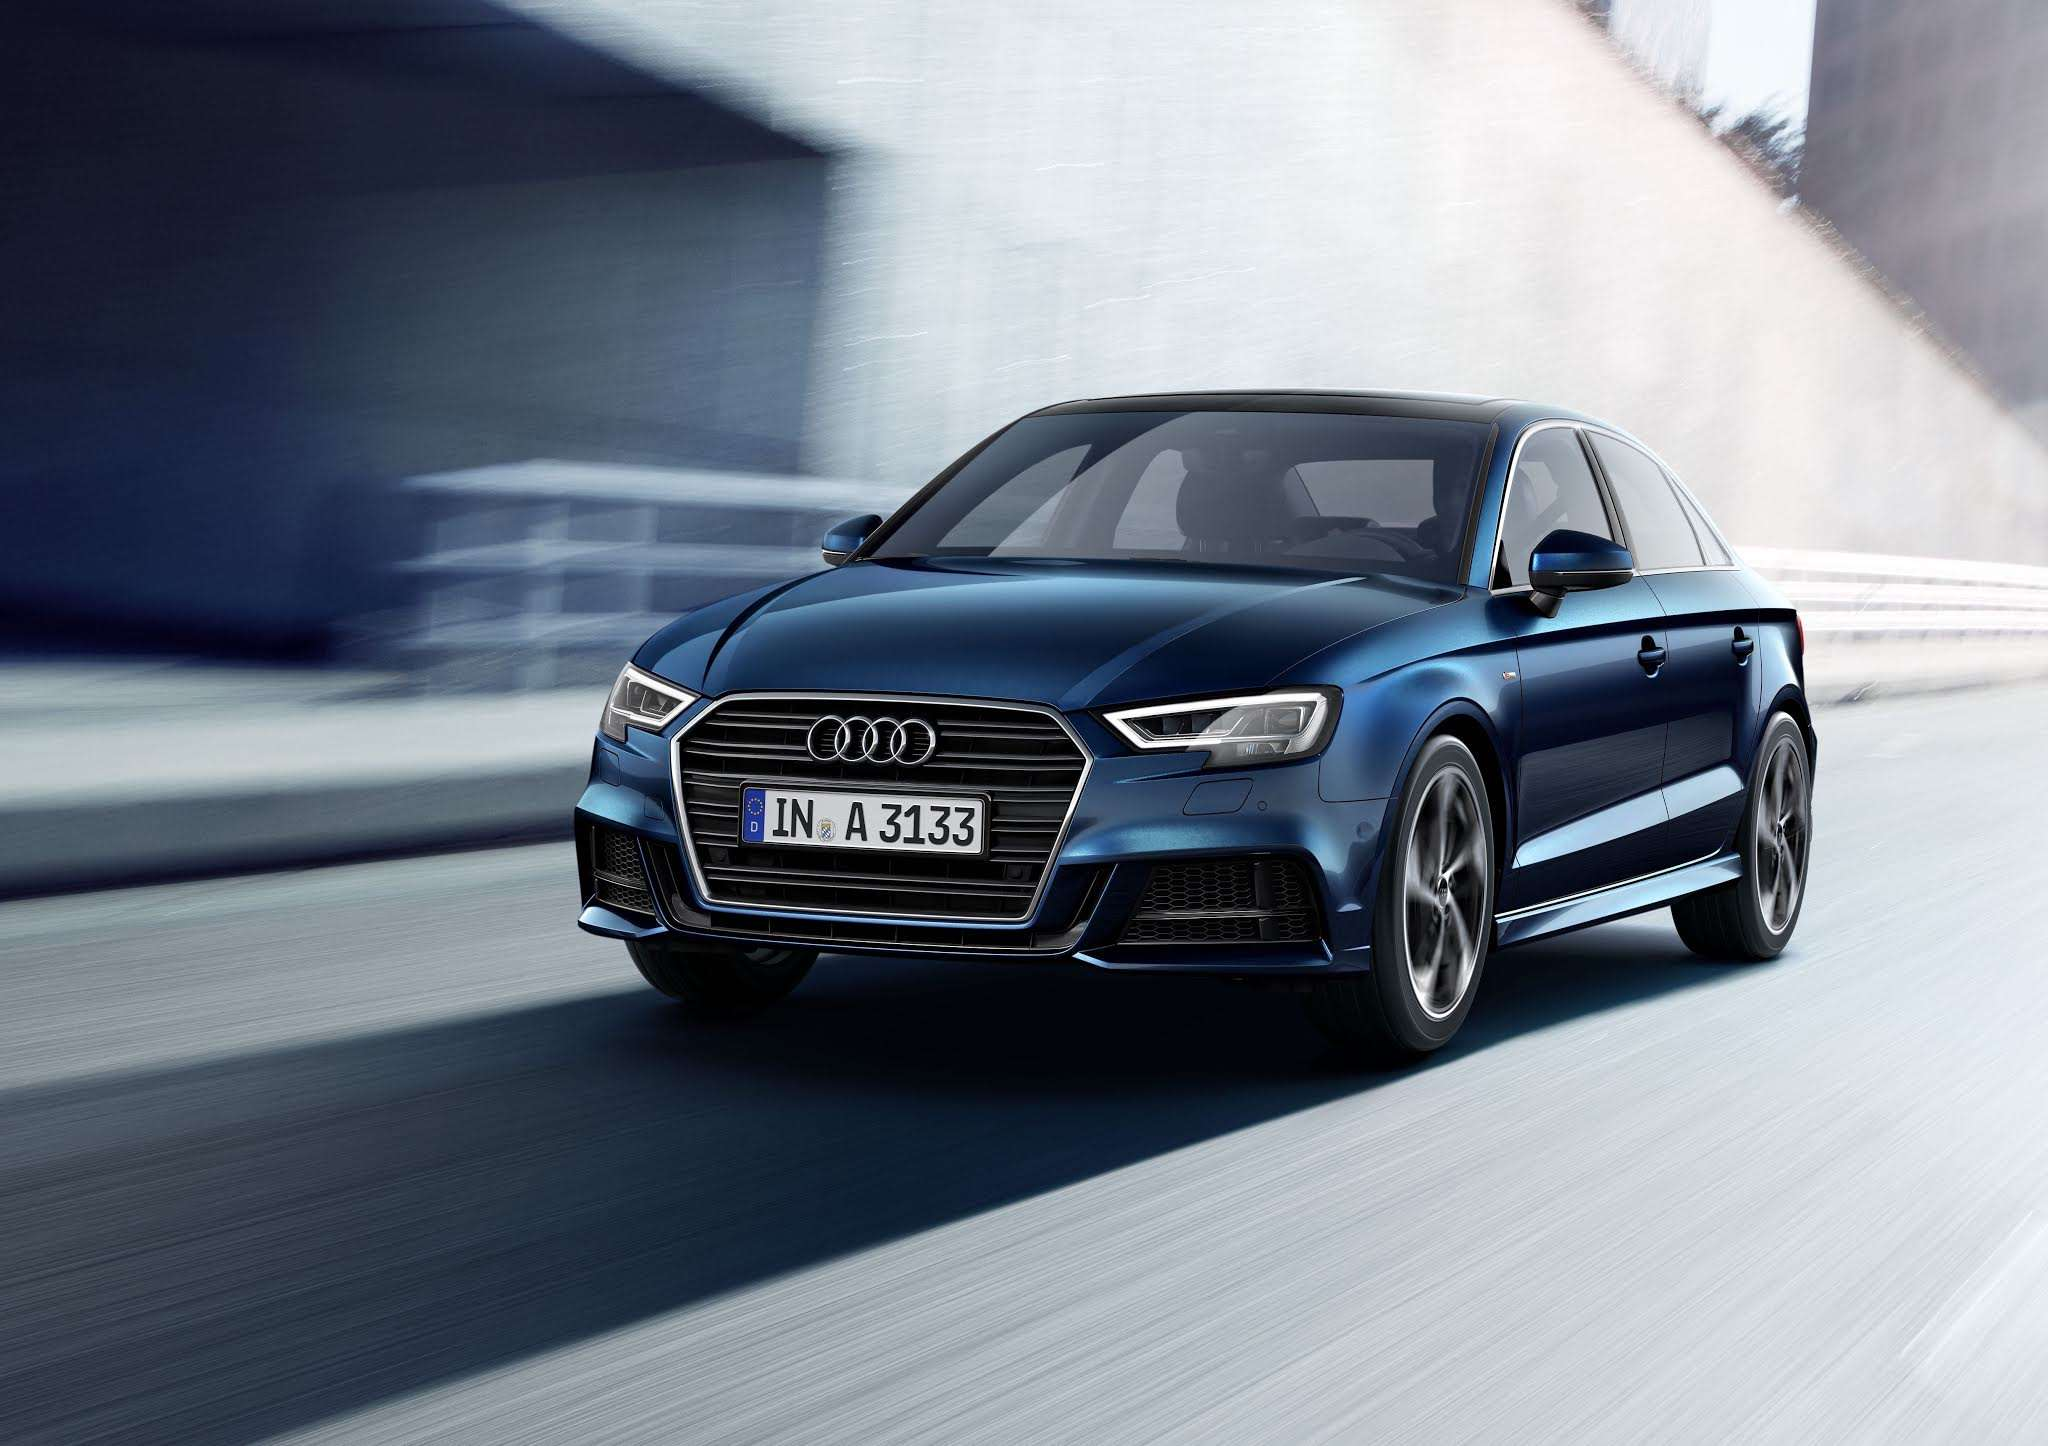 Audi A3 Price Audi India Slashes Price Of A3 Sedan By Rs 5 Lakh